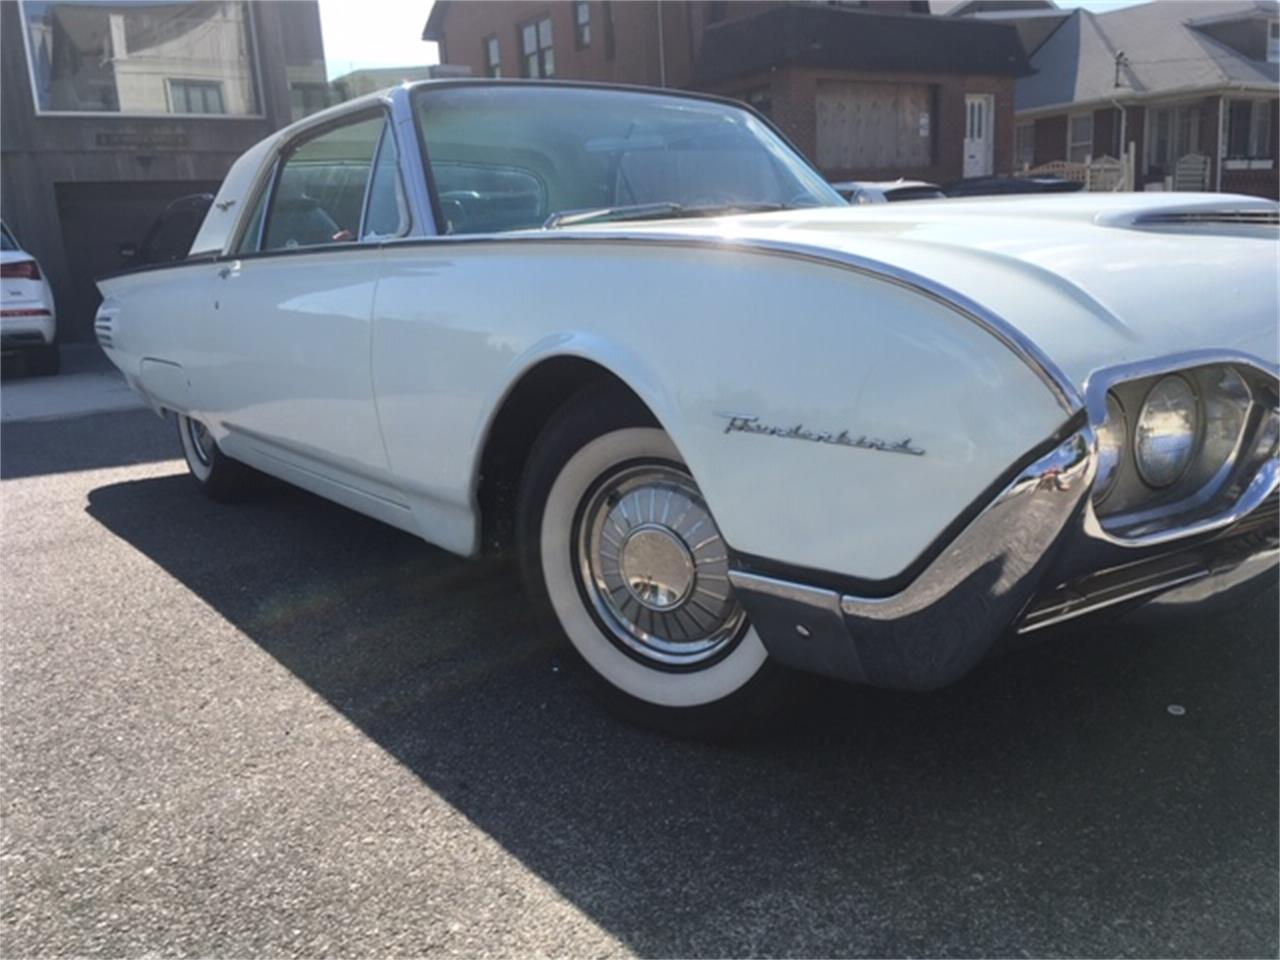 Large Picture of Classic 1961 Ford Thunderbird located in New York - $9,700.00 Offered by a Private Seller - QIBR